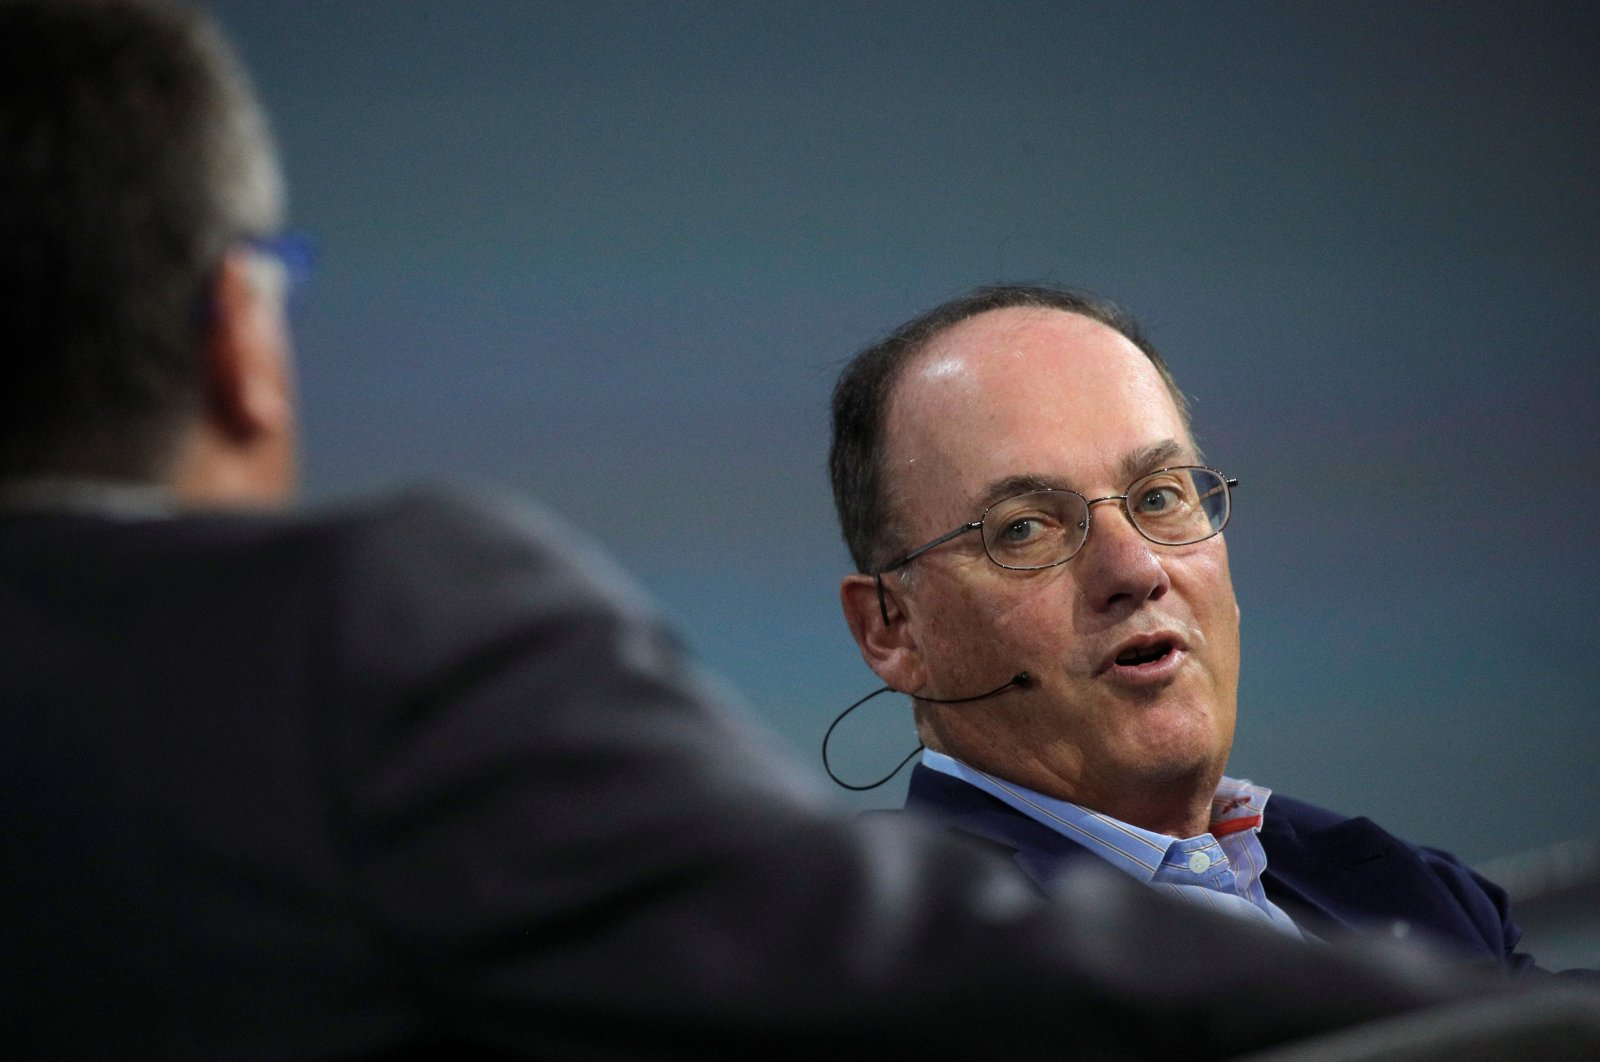 Steven Cohen, chairperson and CEO of Point72 Asset Management, speaks during the Skybridge Capital SALT New York 2021 conference in New York City, U.S., Sept. 13, 2021. (Reuters Photo)